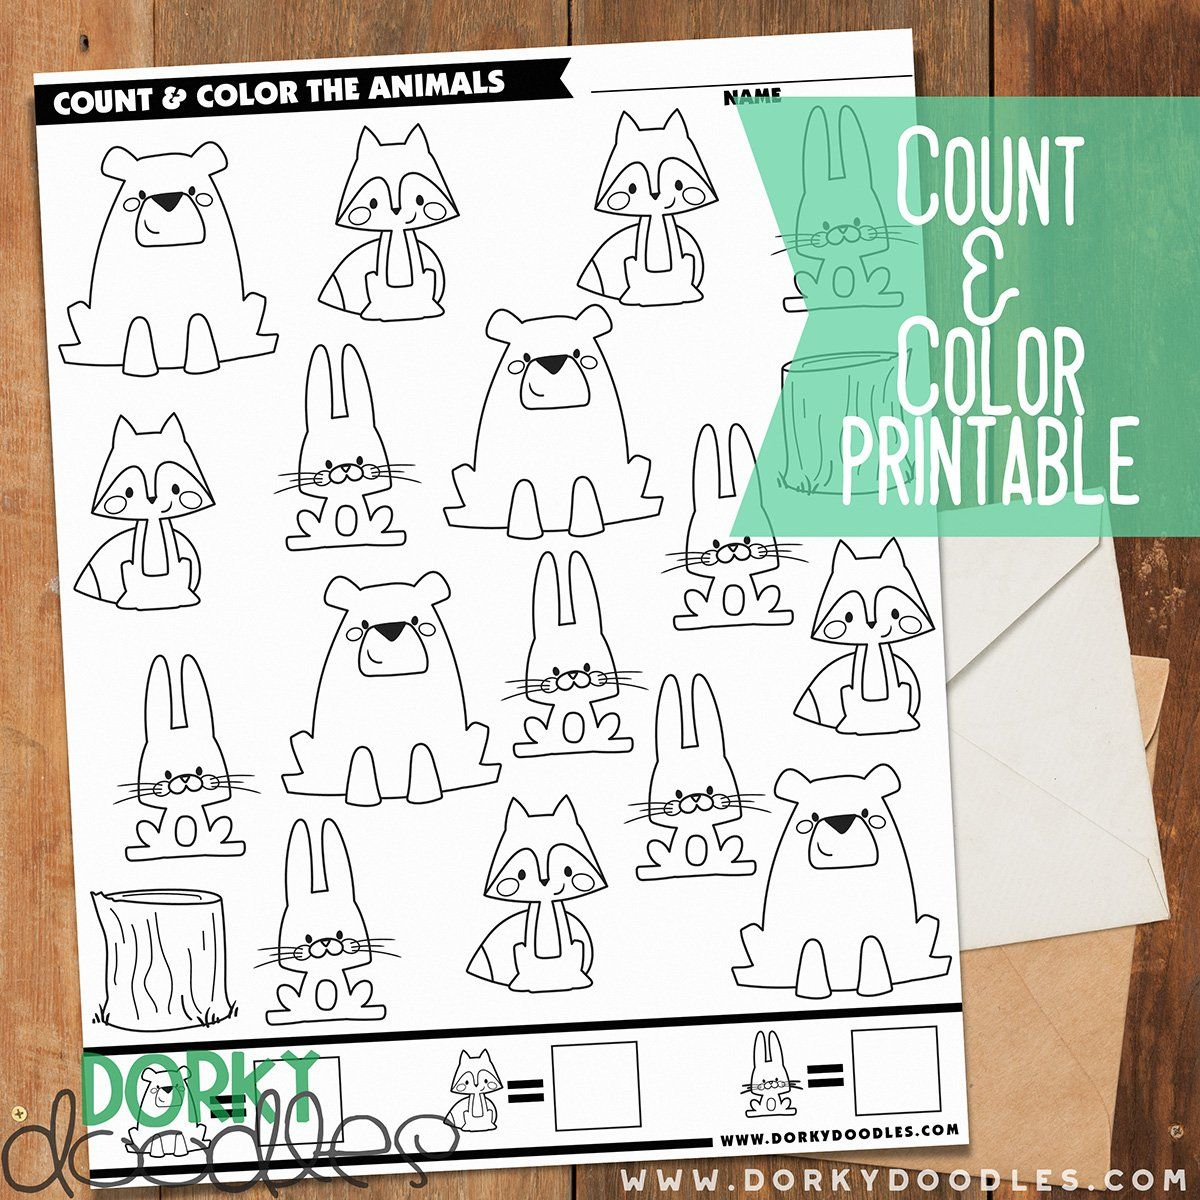 Count And Color Printable Worksheet